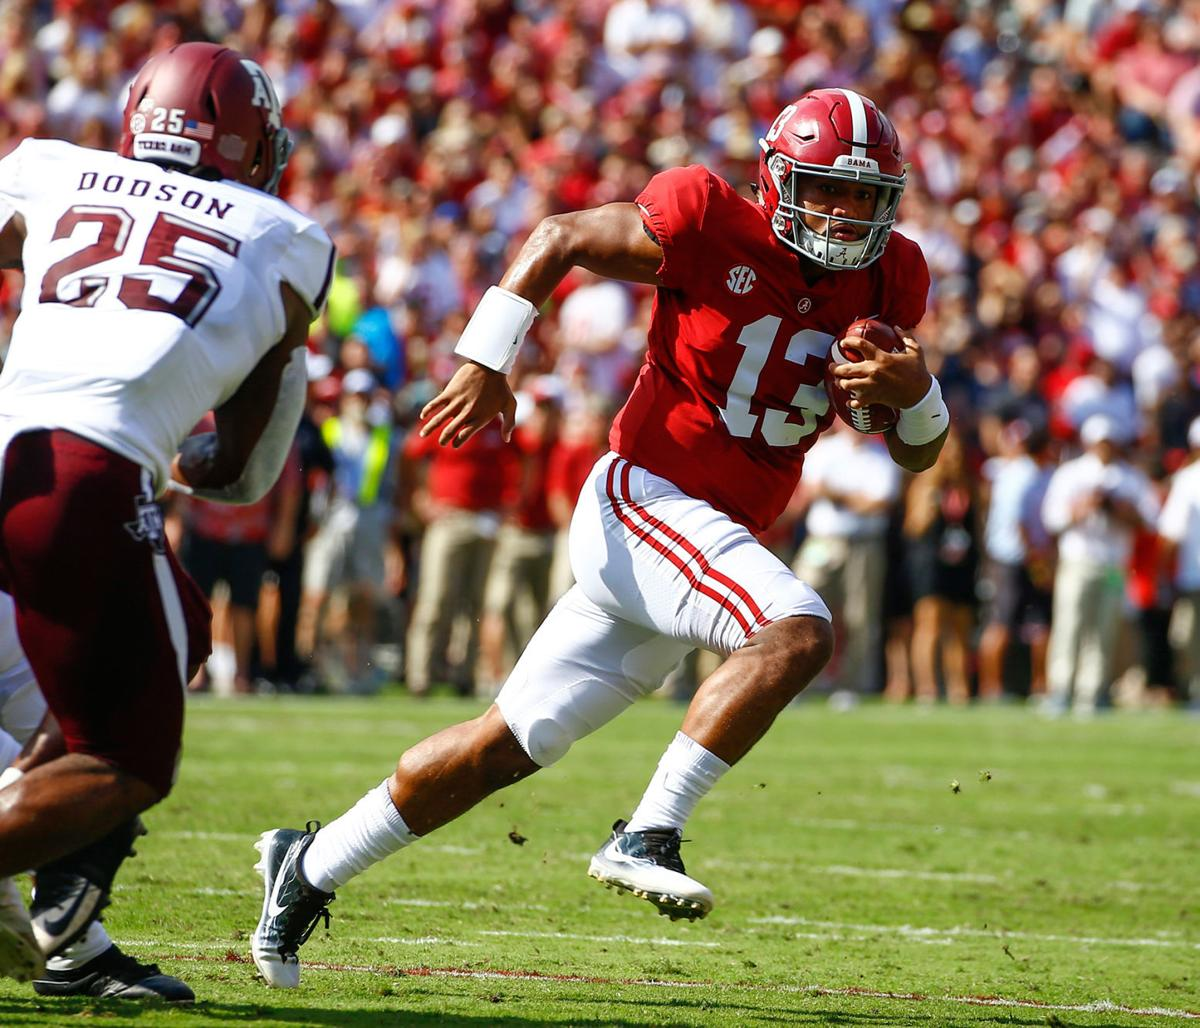 Midterms! Who's hot so far in college football, CFP forecast